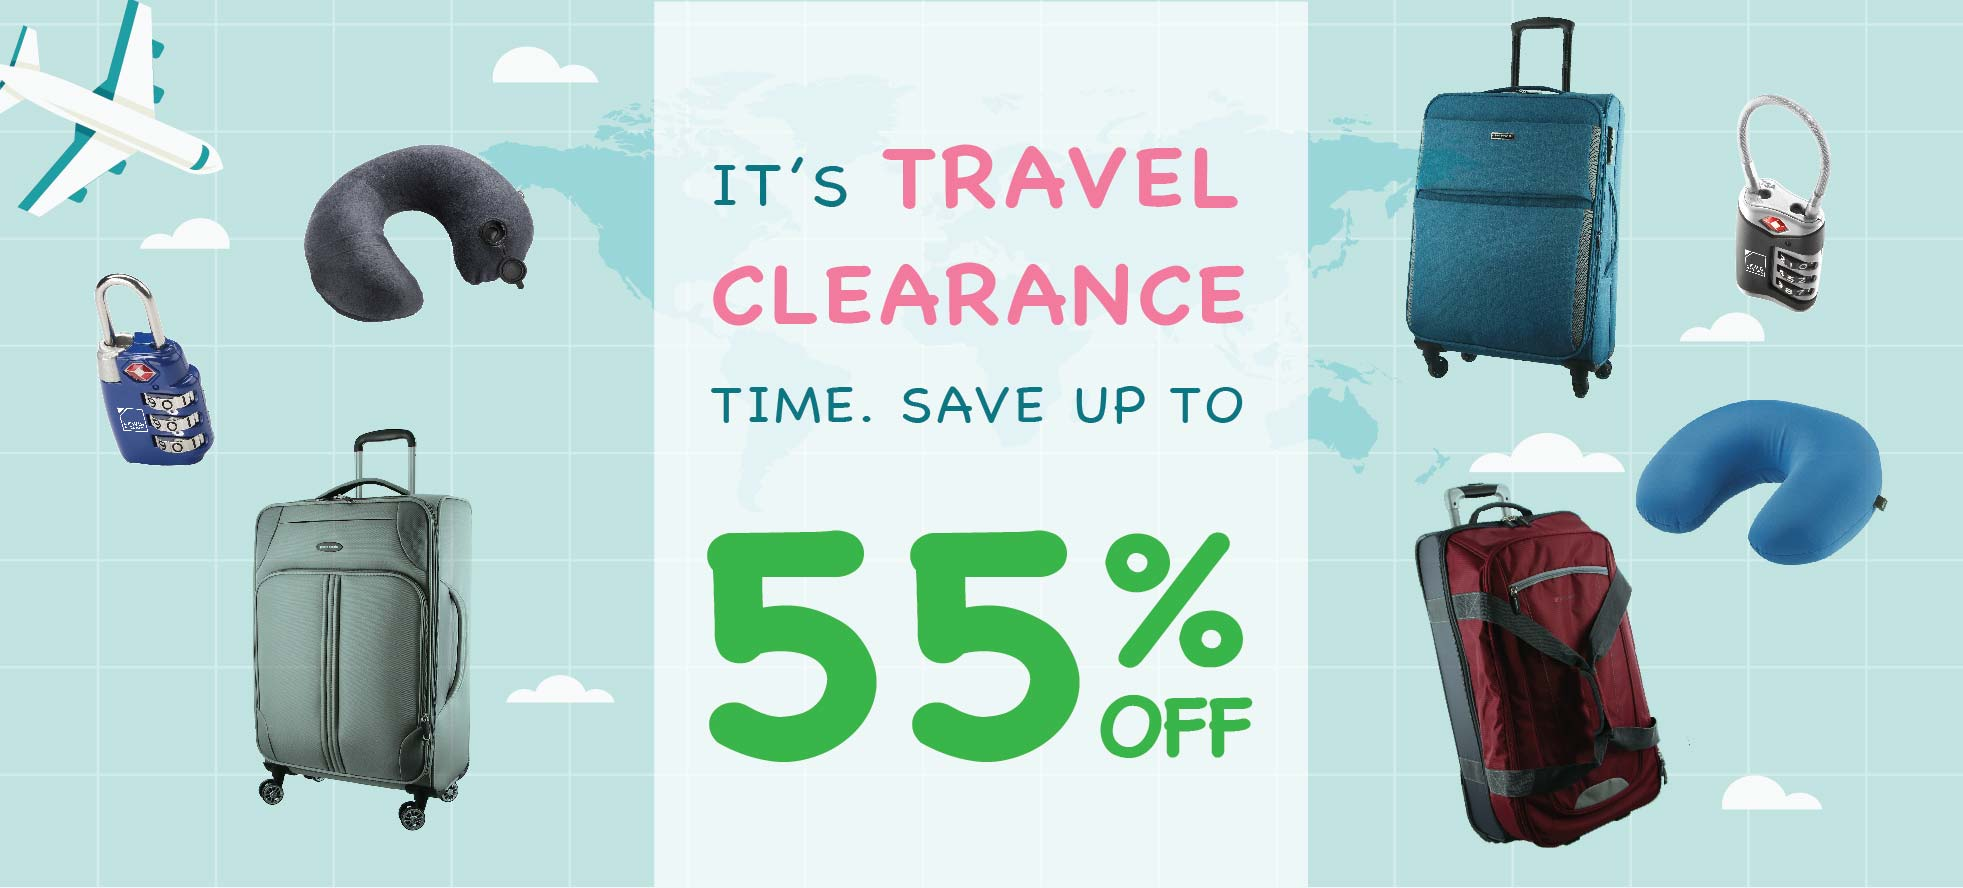 travel-clearance-banner.jpg